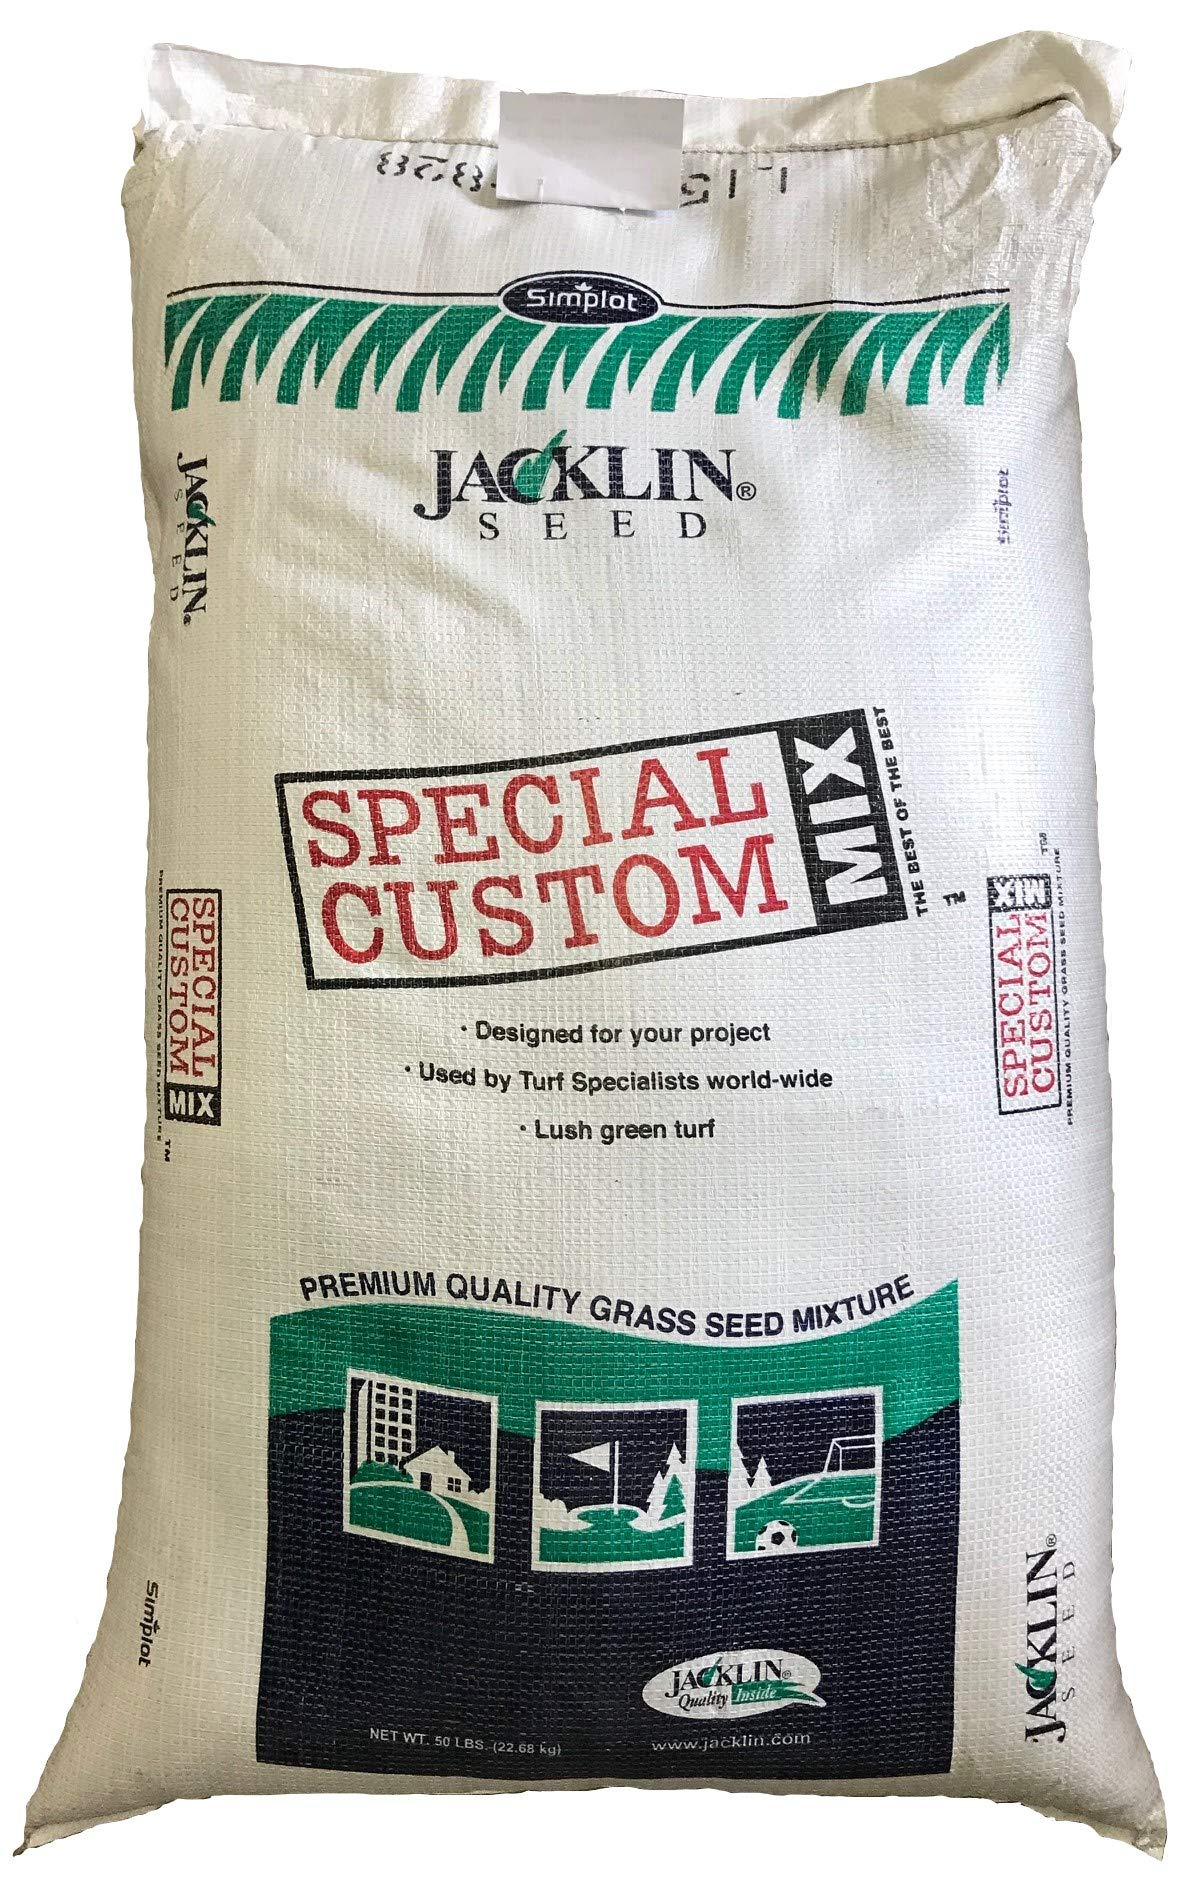 Jacklin Seed - Heisman Mix | 85% Kentucky Bluegrass, 15% Perennial Ryegrass | Certified Grass Seed (5-50 lbs) (50 lbs (20,000 sq ft))